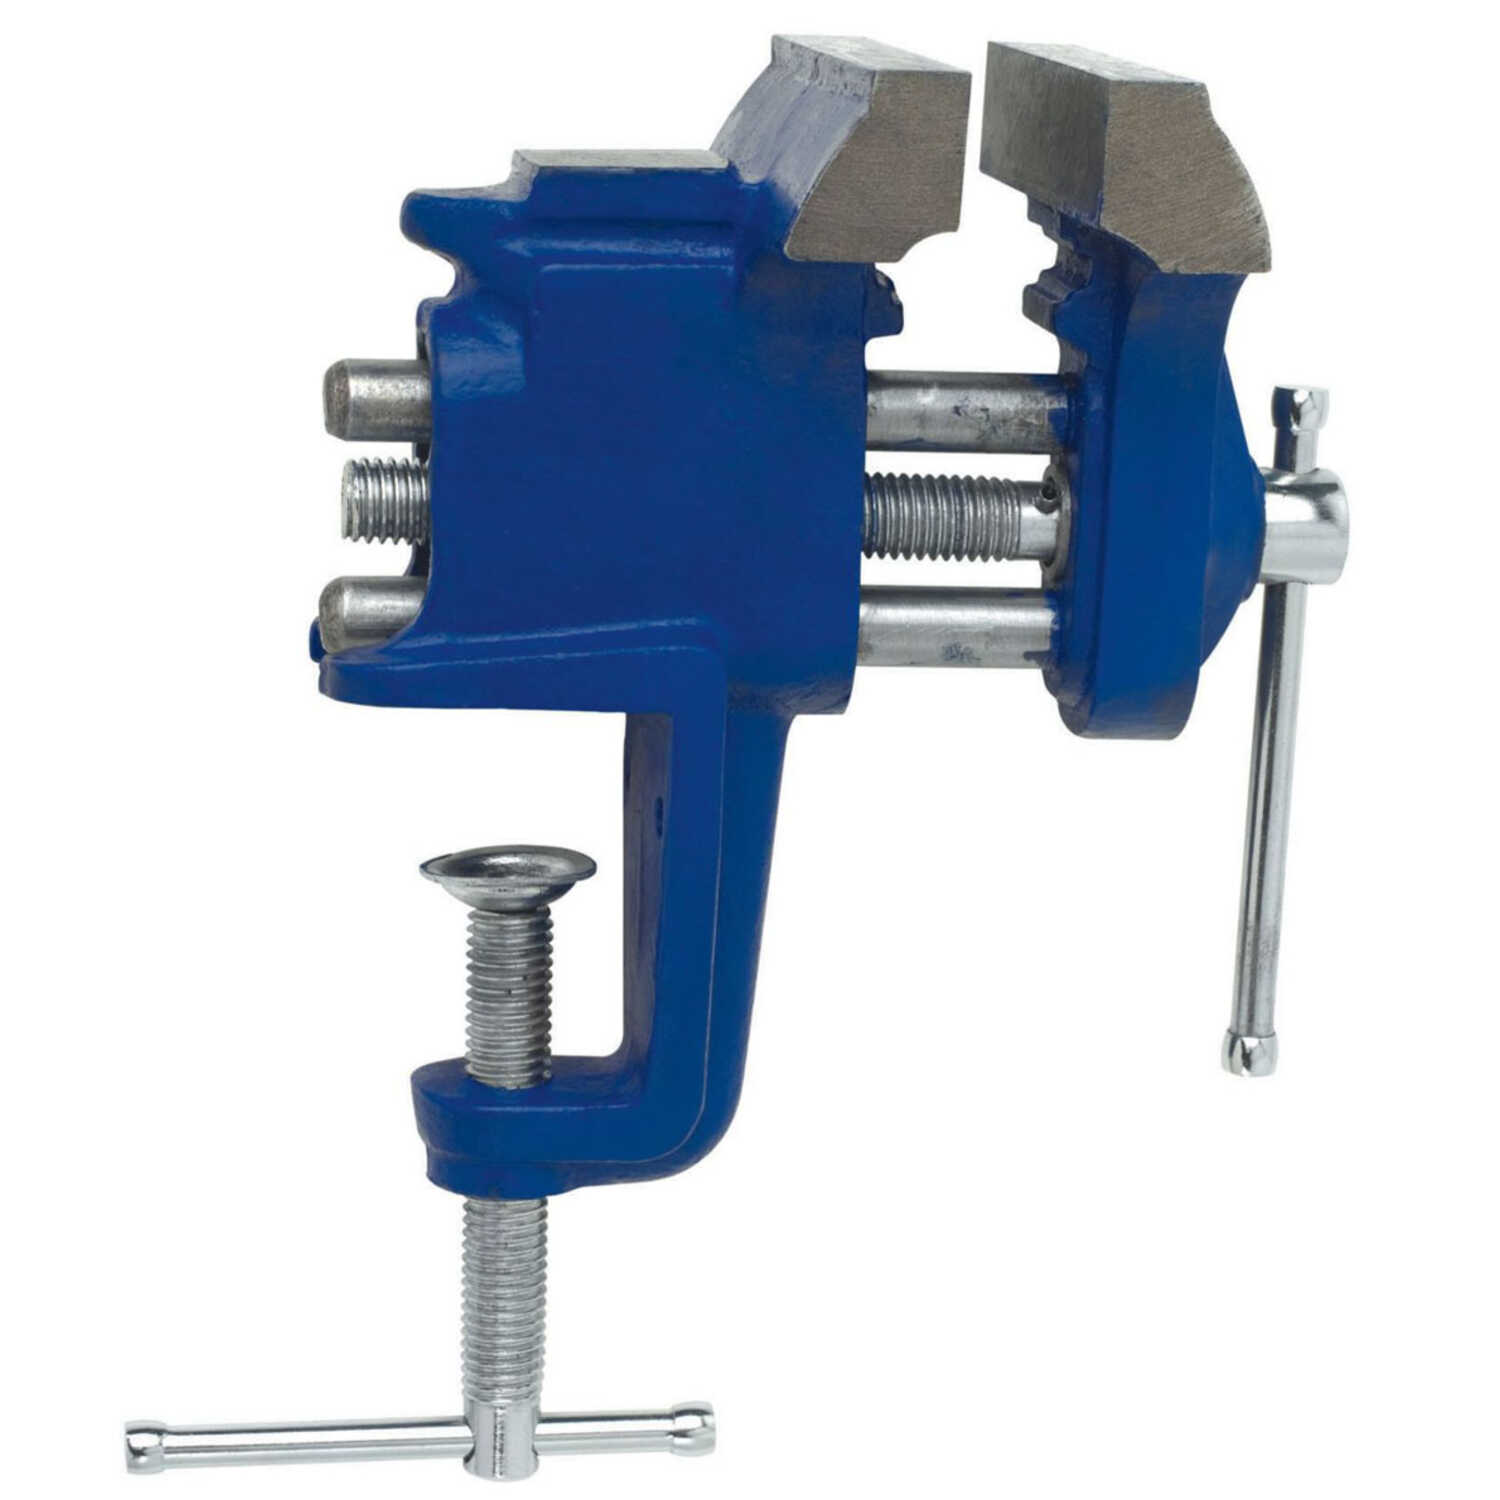 Irwin  3 in. Steel  Stationary Bench Vise  Blue